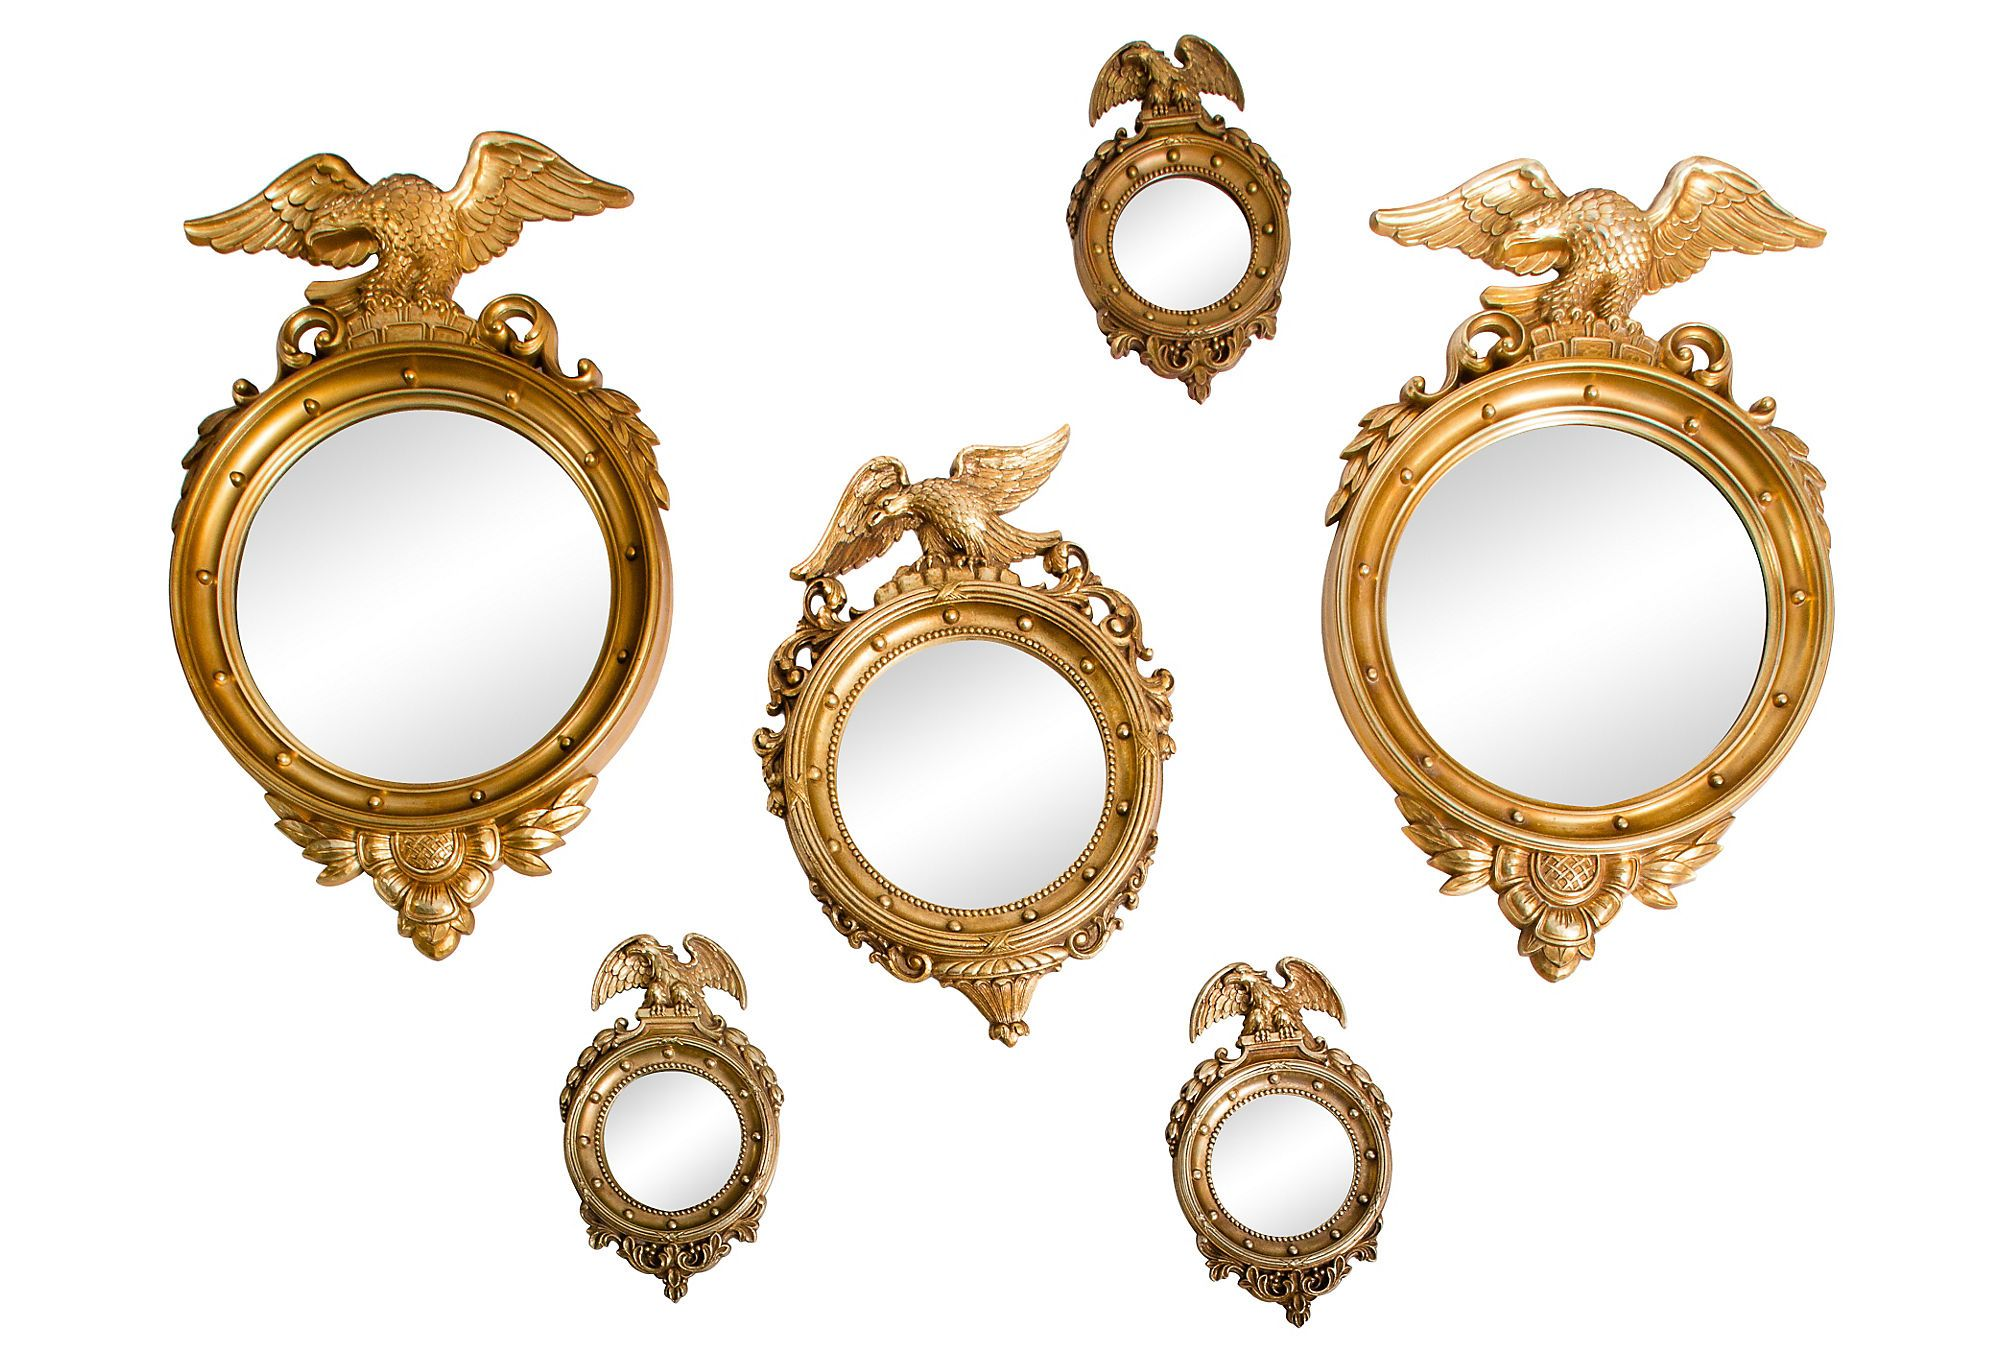 Small Gold Mirror Set One Kings Lane Furniture Accents And Jewelry Gold